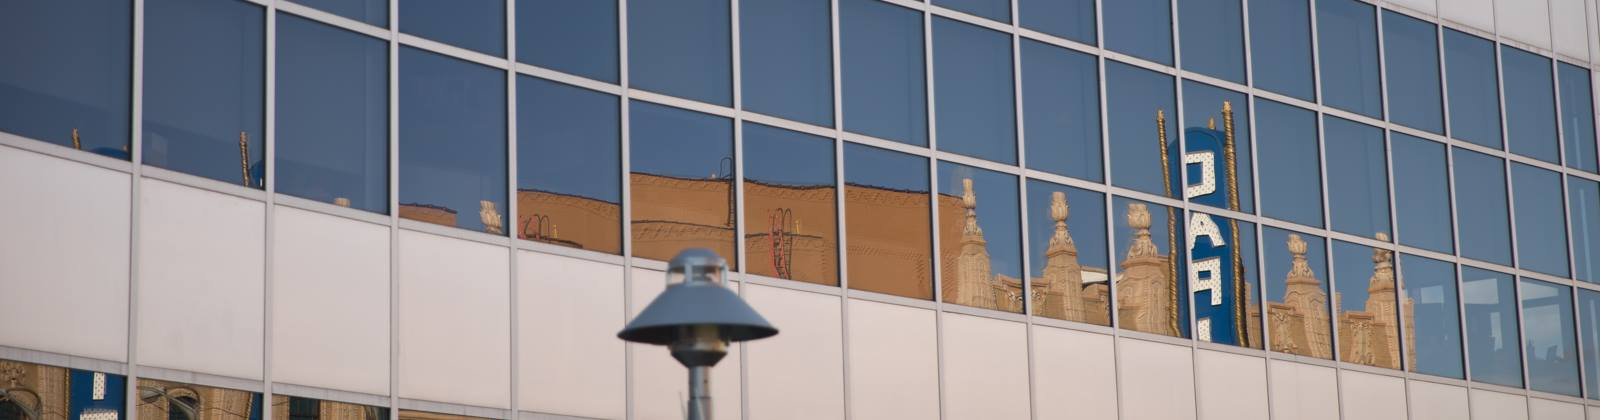 The Capitol Theatre sign is reflected in the windows of the Wade Trim Building in downtown Flint. The theatre is undergoing a massive $37 million renovation.